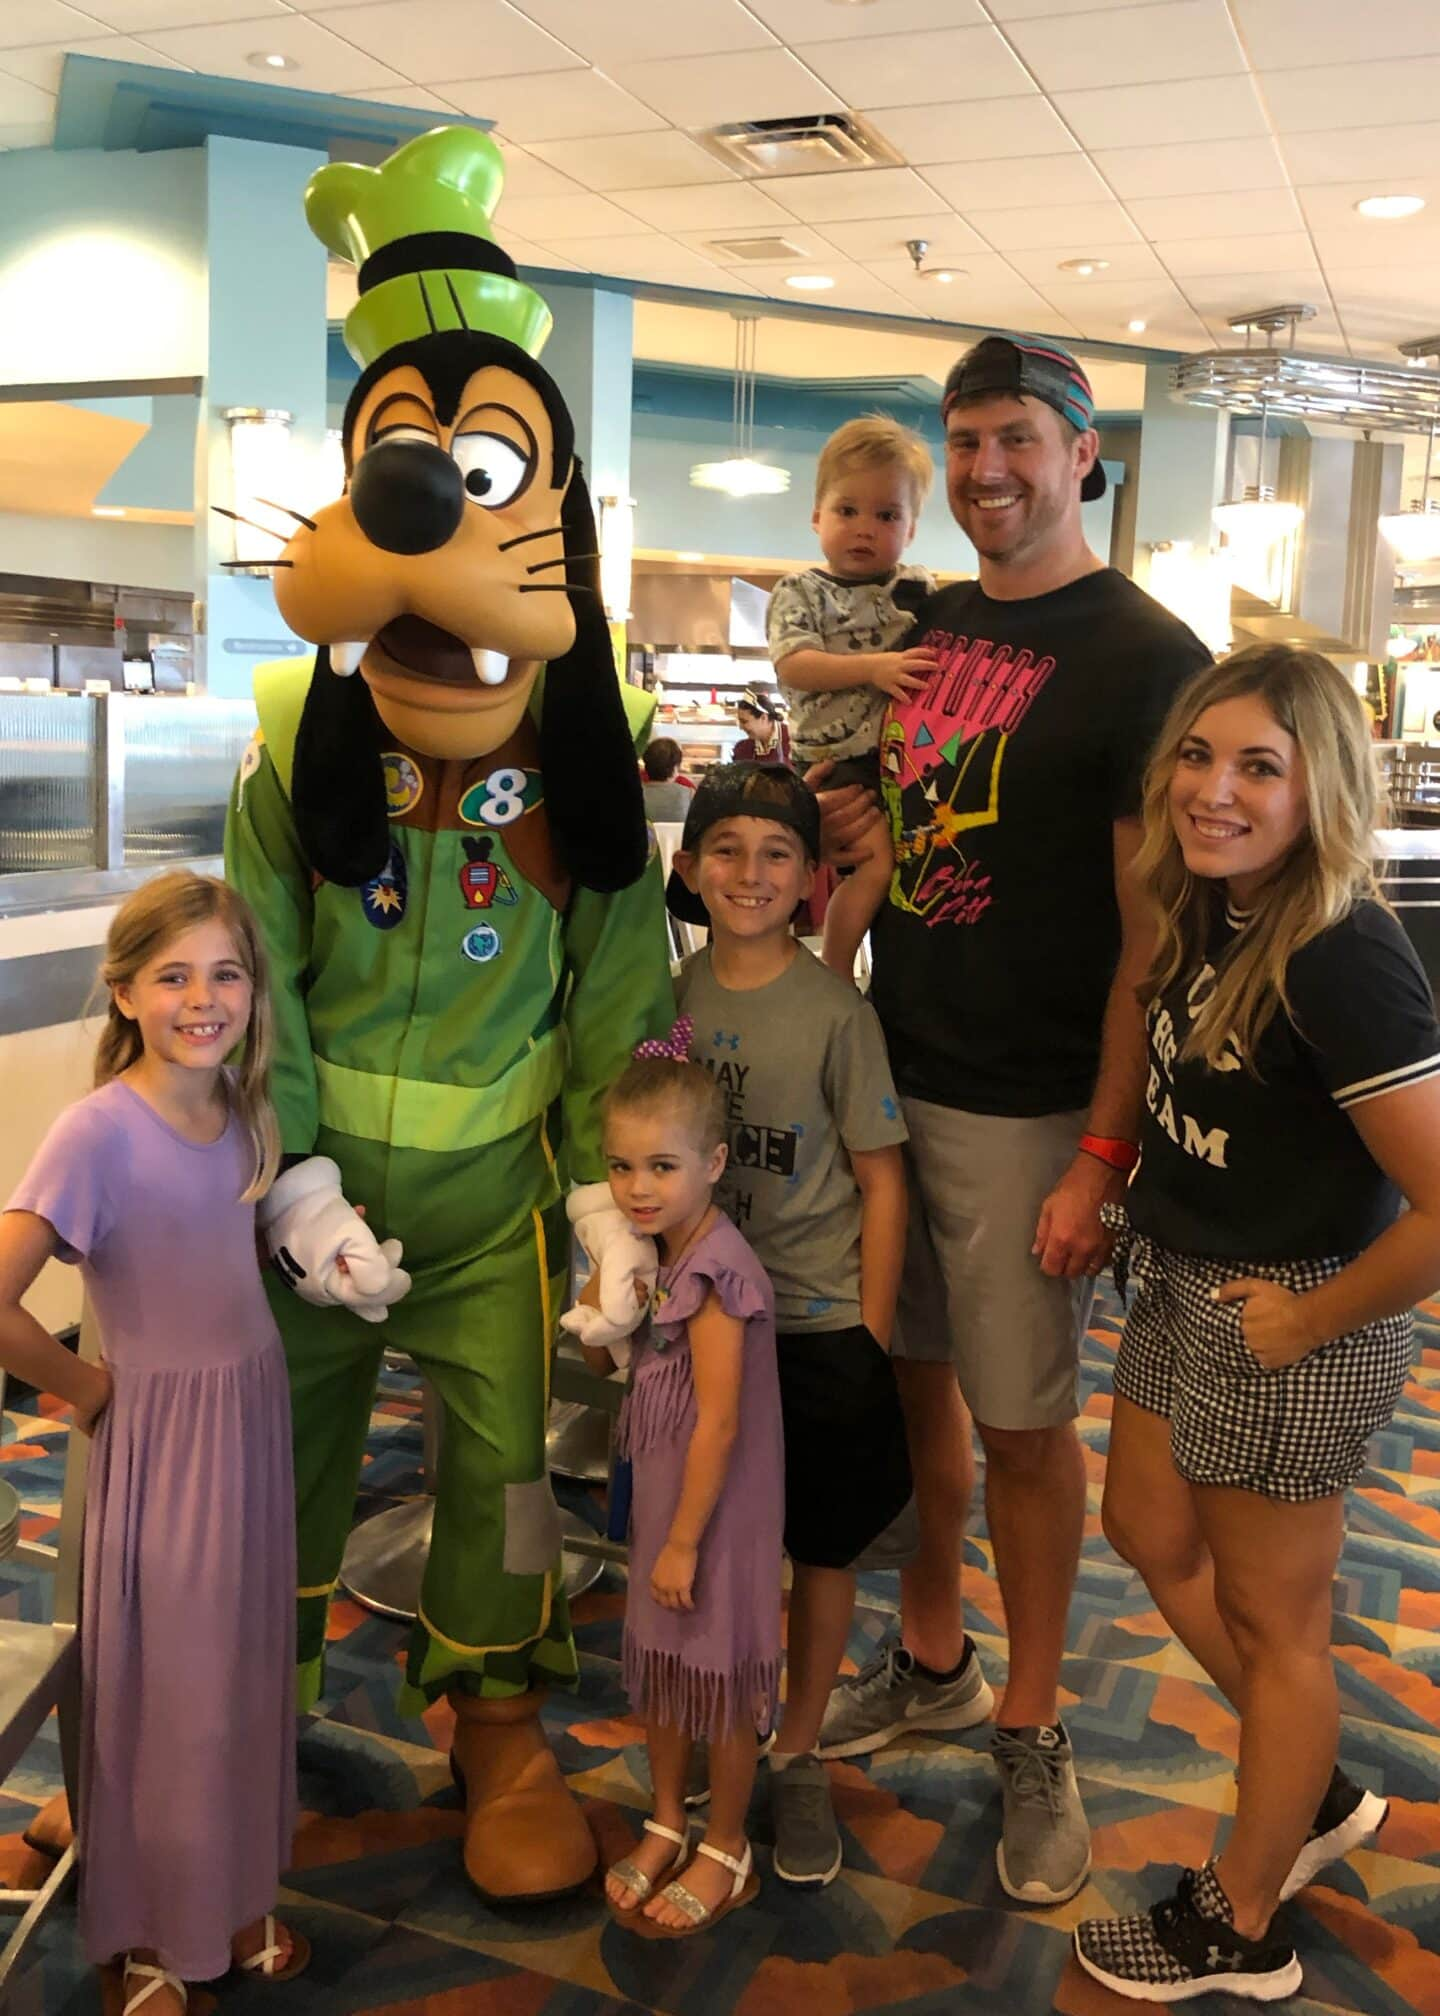 Tess's 5th Birthday at Disney: Hollywood Studios Morning